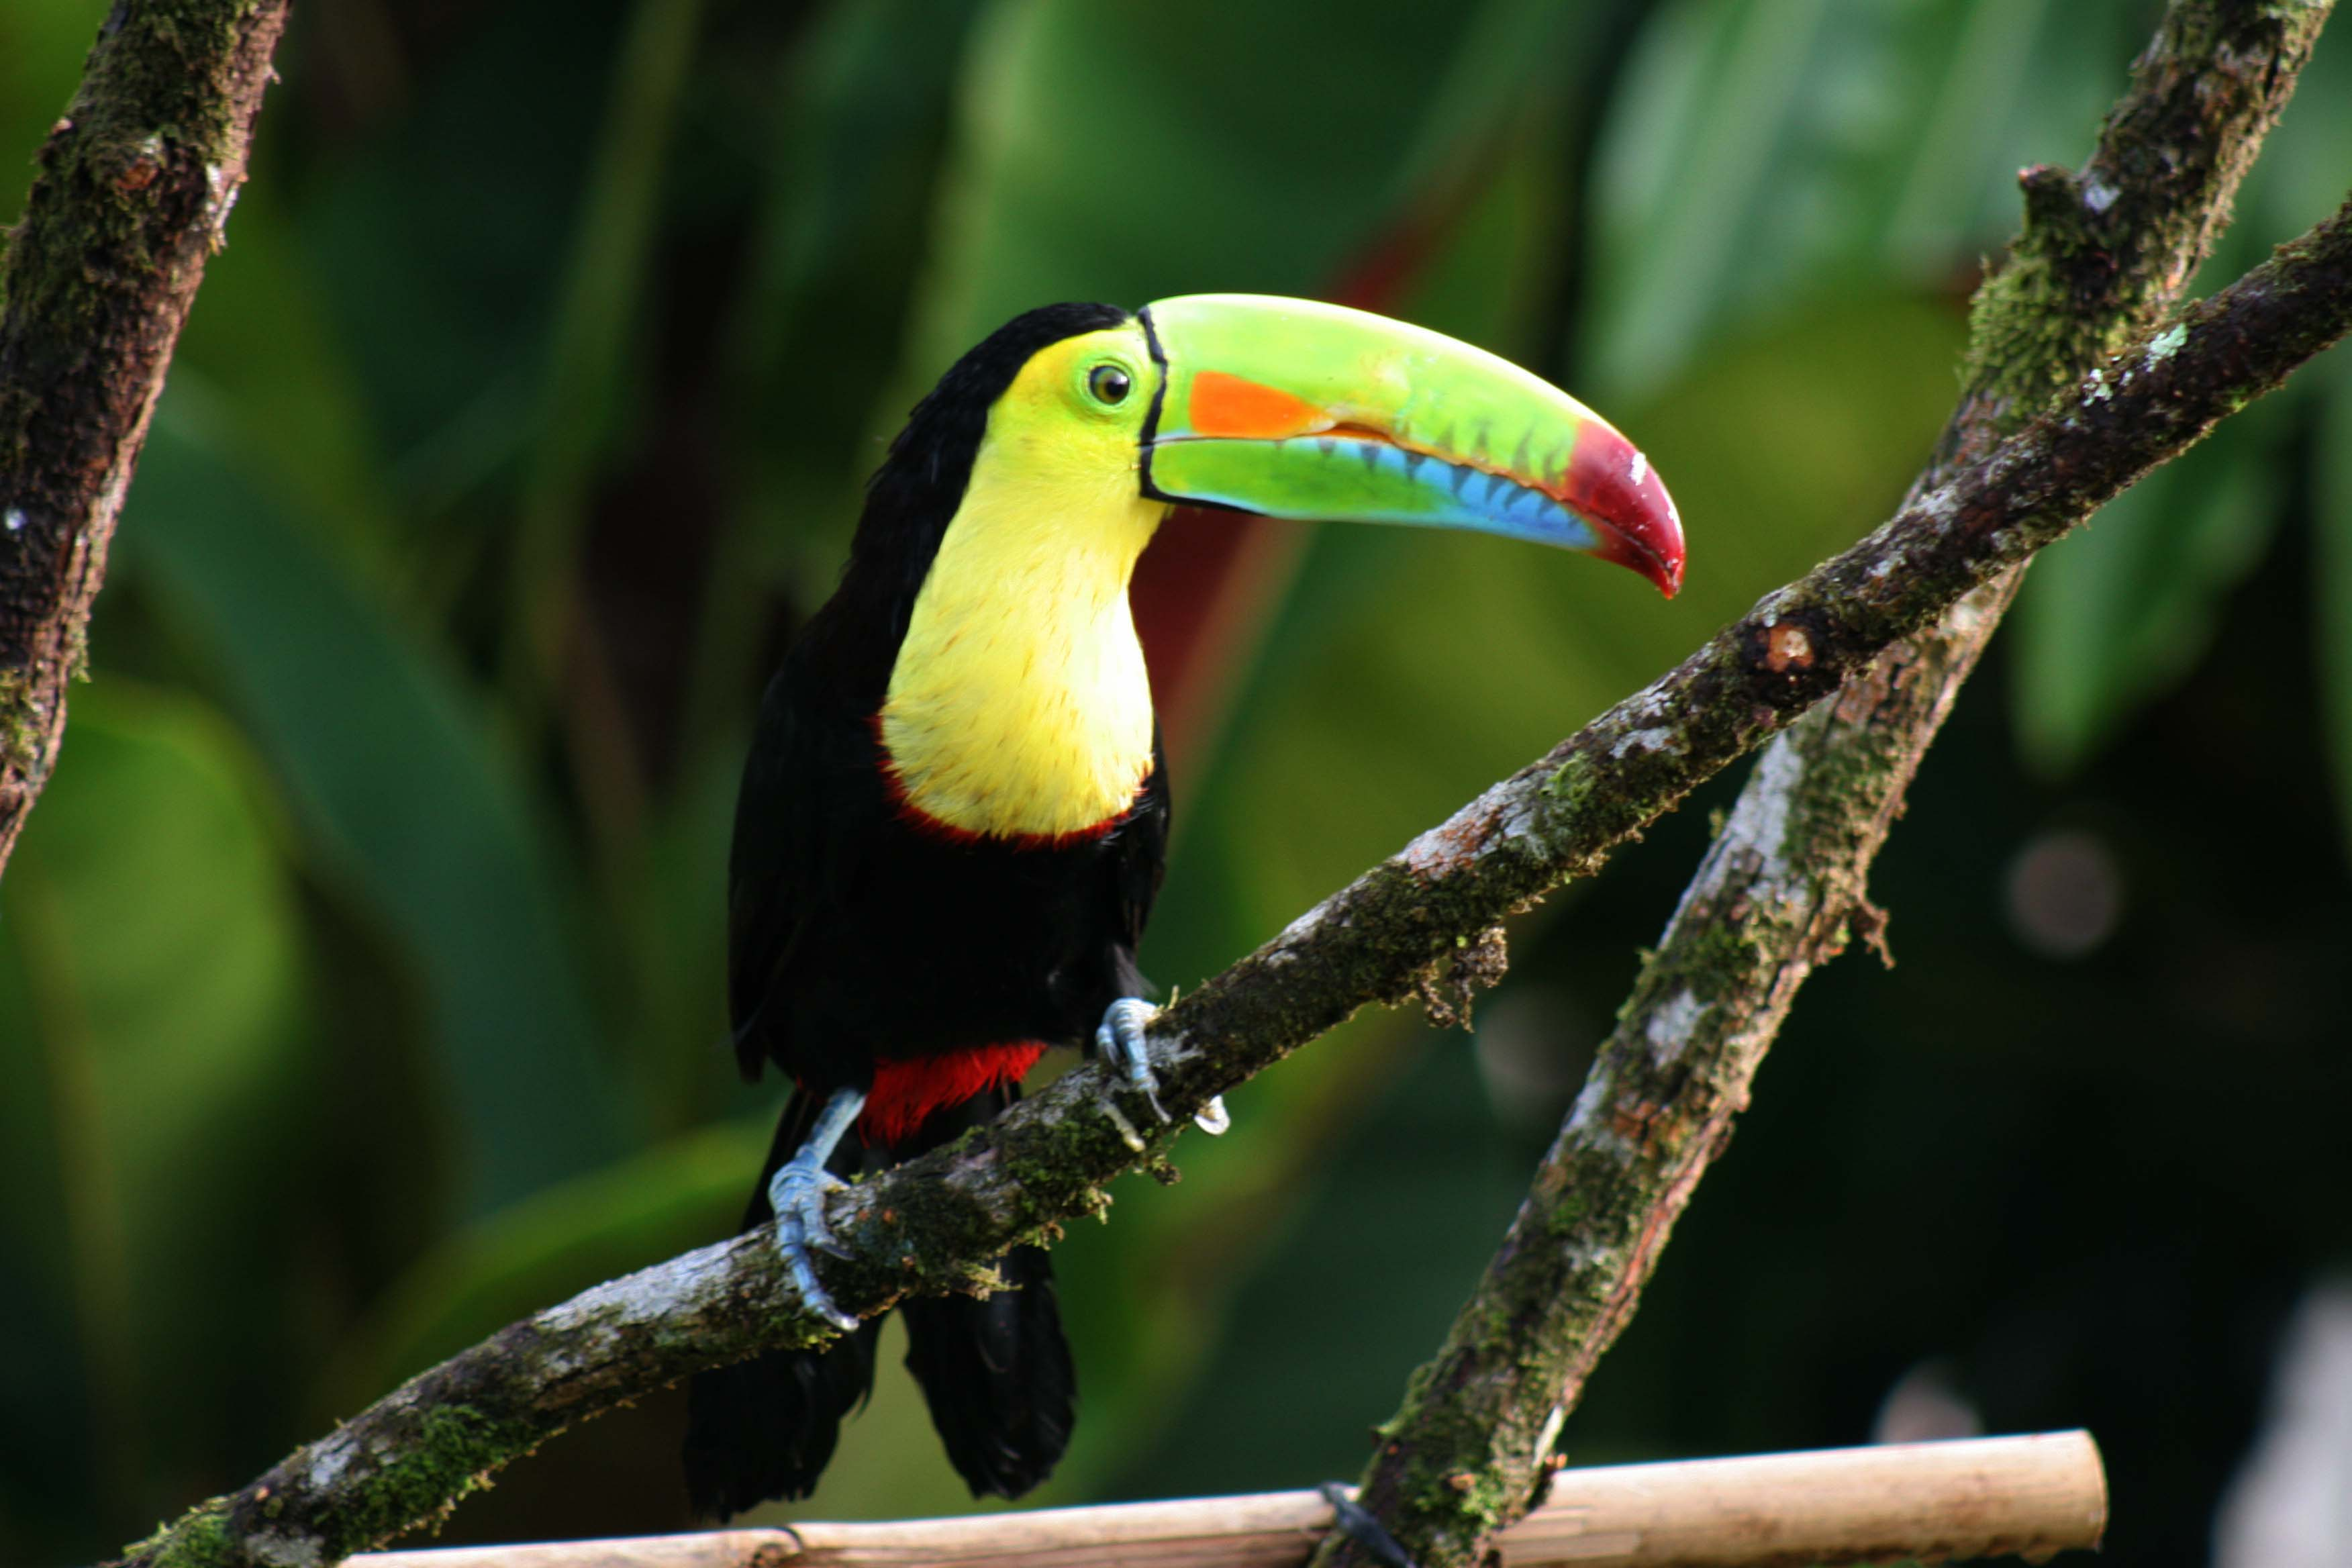 Toucan Wallpapers Wallpaper Cave HD Wallpapers Download Free Images Wallpaper [1000image.com]